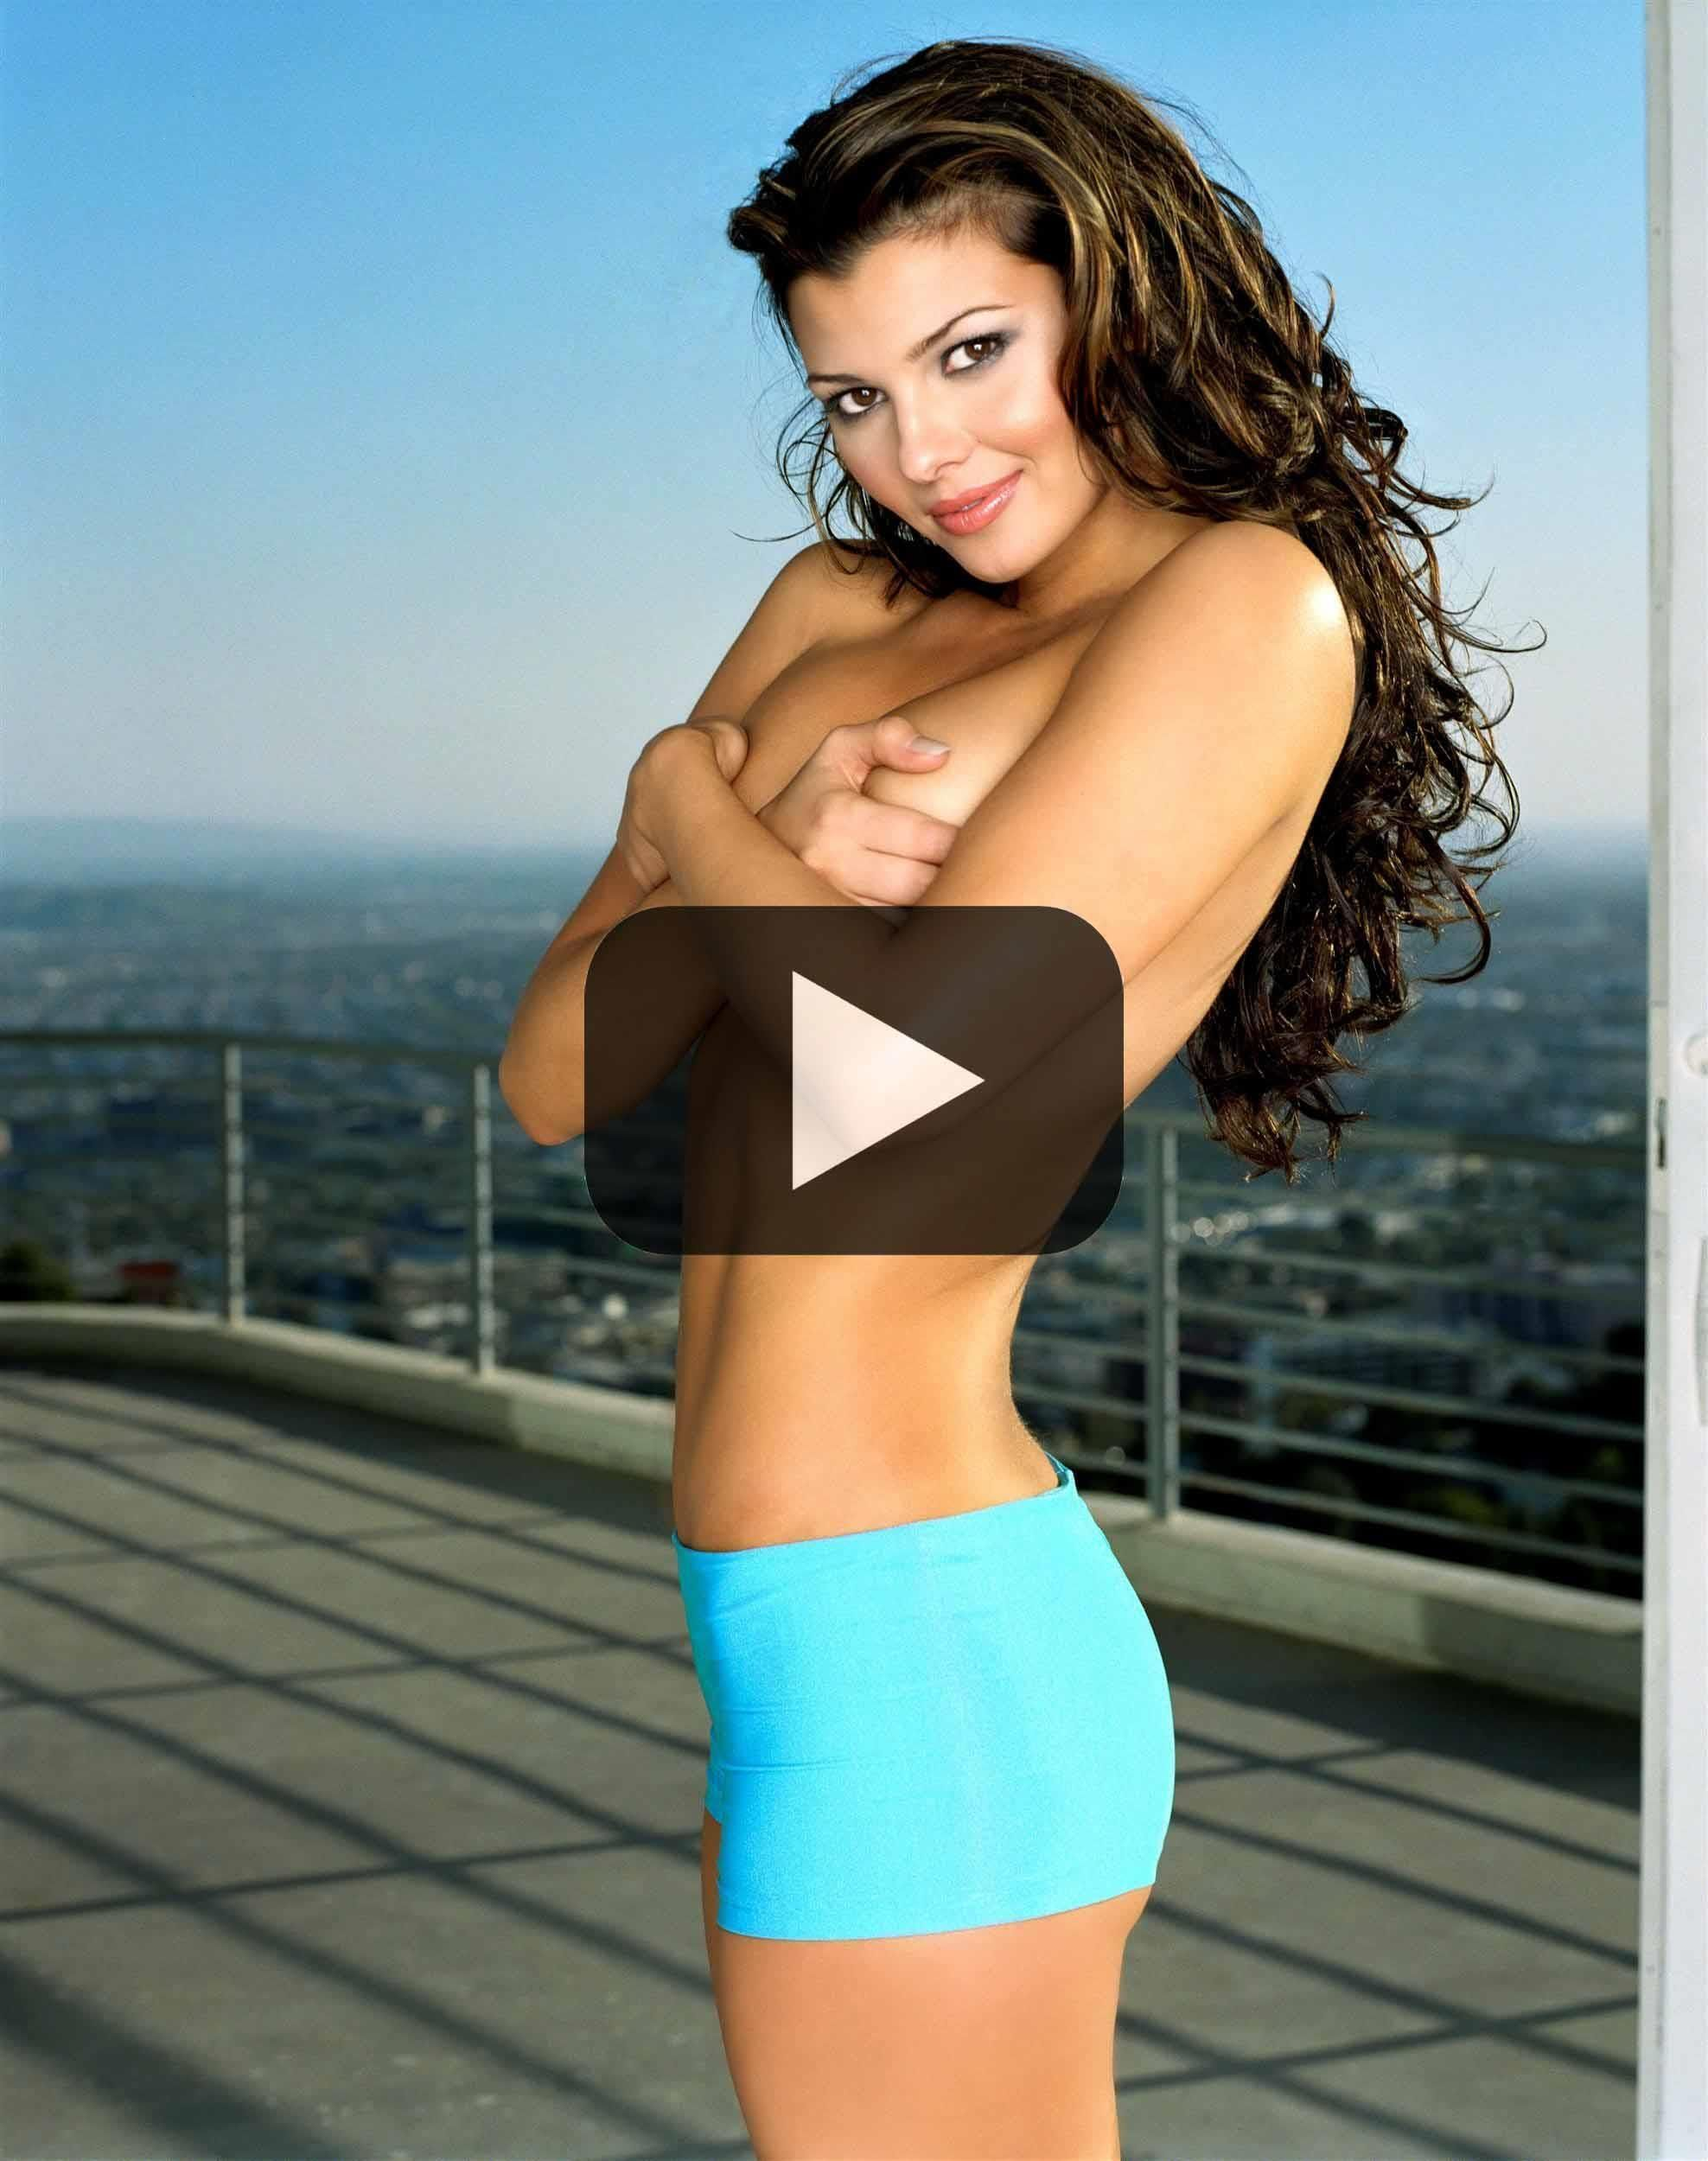 mor porno tube gratis download